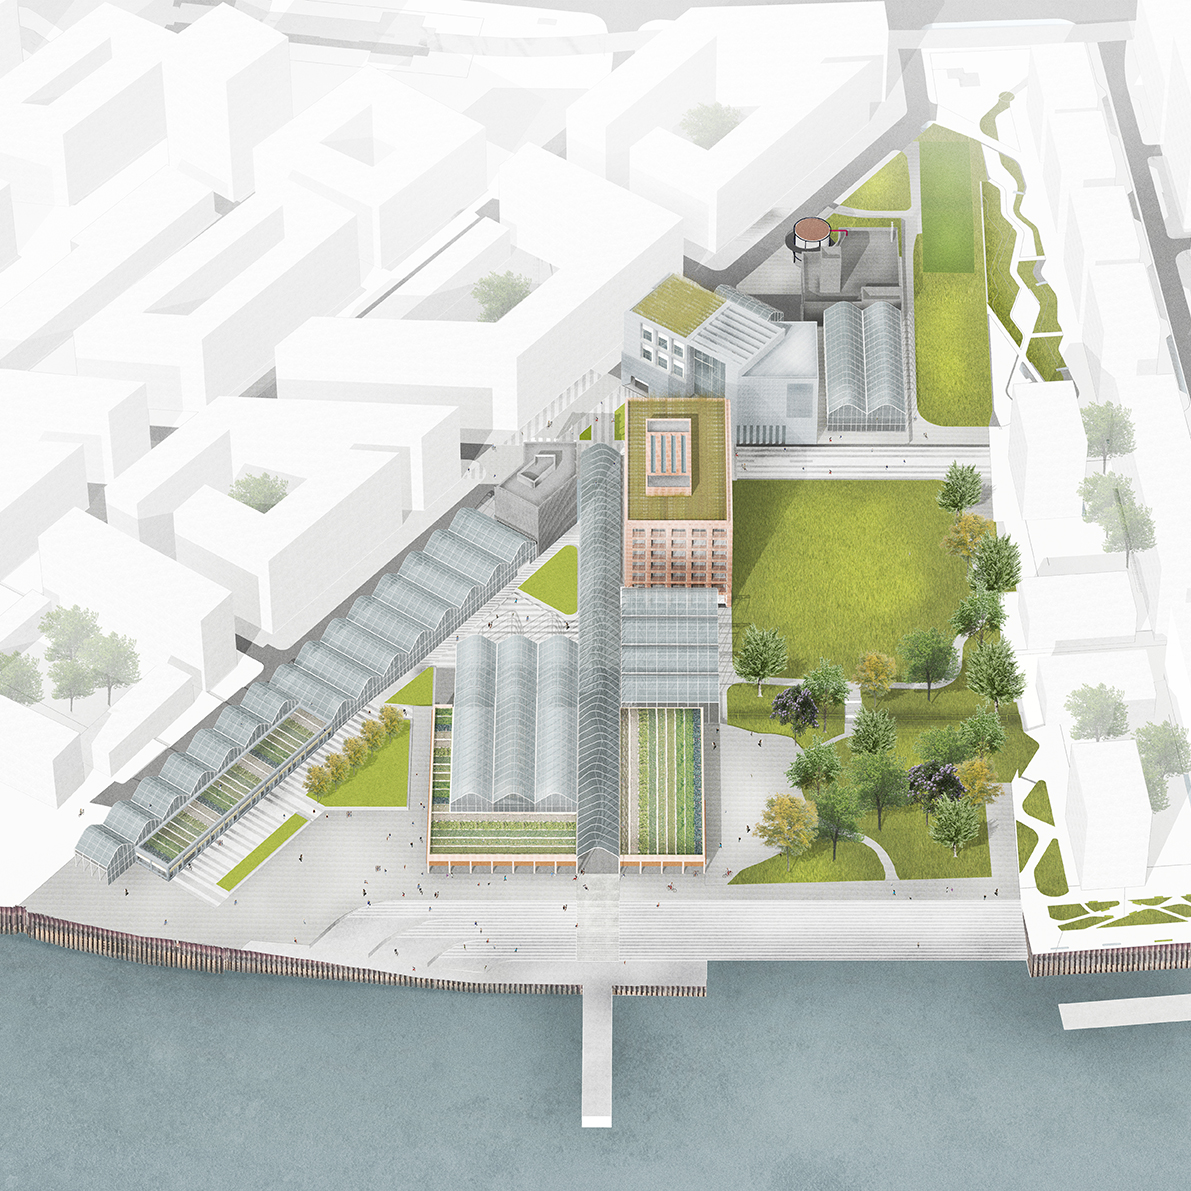 An overview of the campus on the banks of the River. An axial glasshouse acts as a public promenade, connecting the proposed main square with the waterfront and culminating in a working fishing pier.